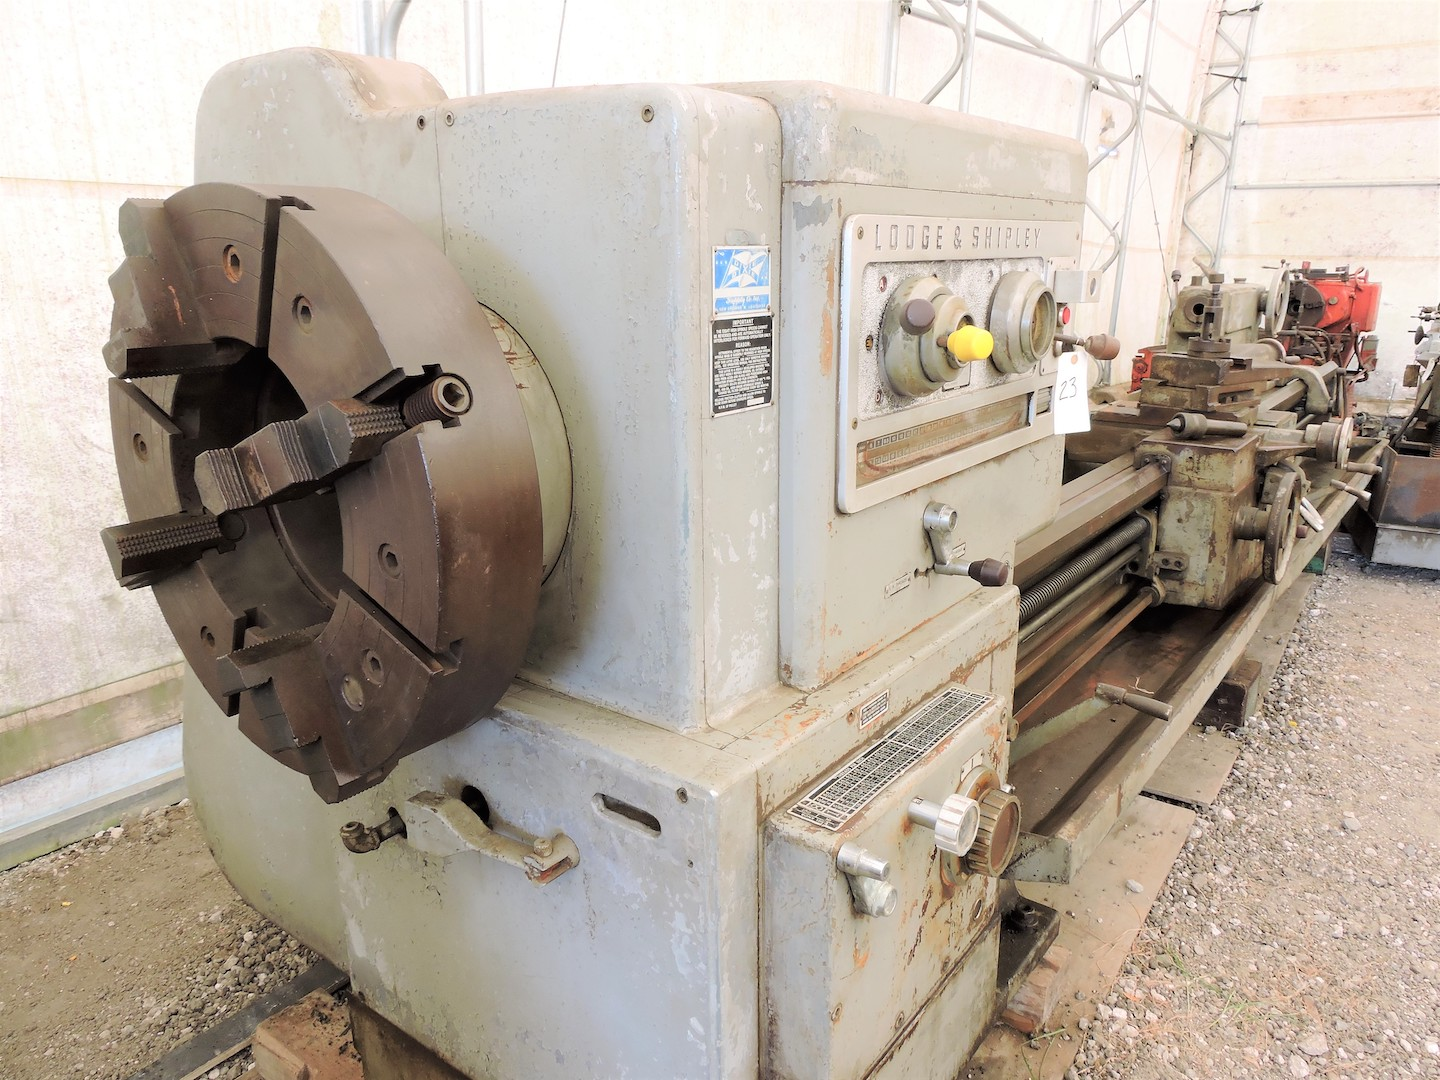 "Lot 1 - LODGE & SHIPLEY 30"" X 120"" MODEL 2516 BIG BORE ENGINE LATHE: S/N 46225 (1965); OIL COUNTRY; FRONT"